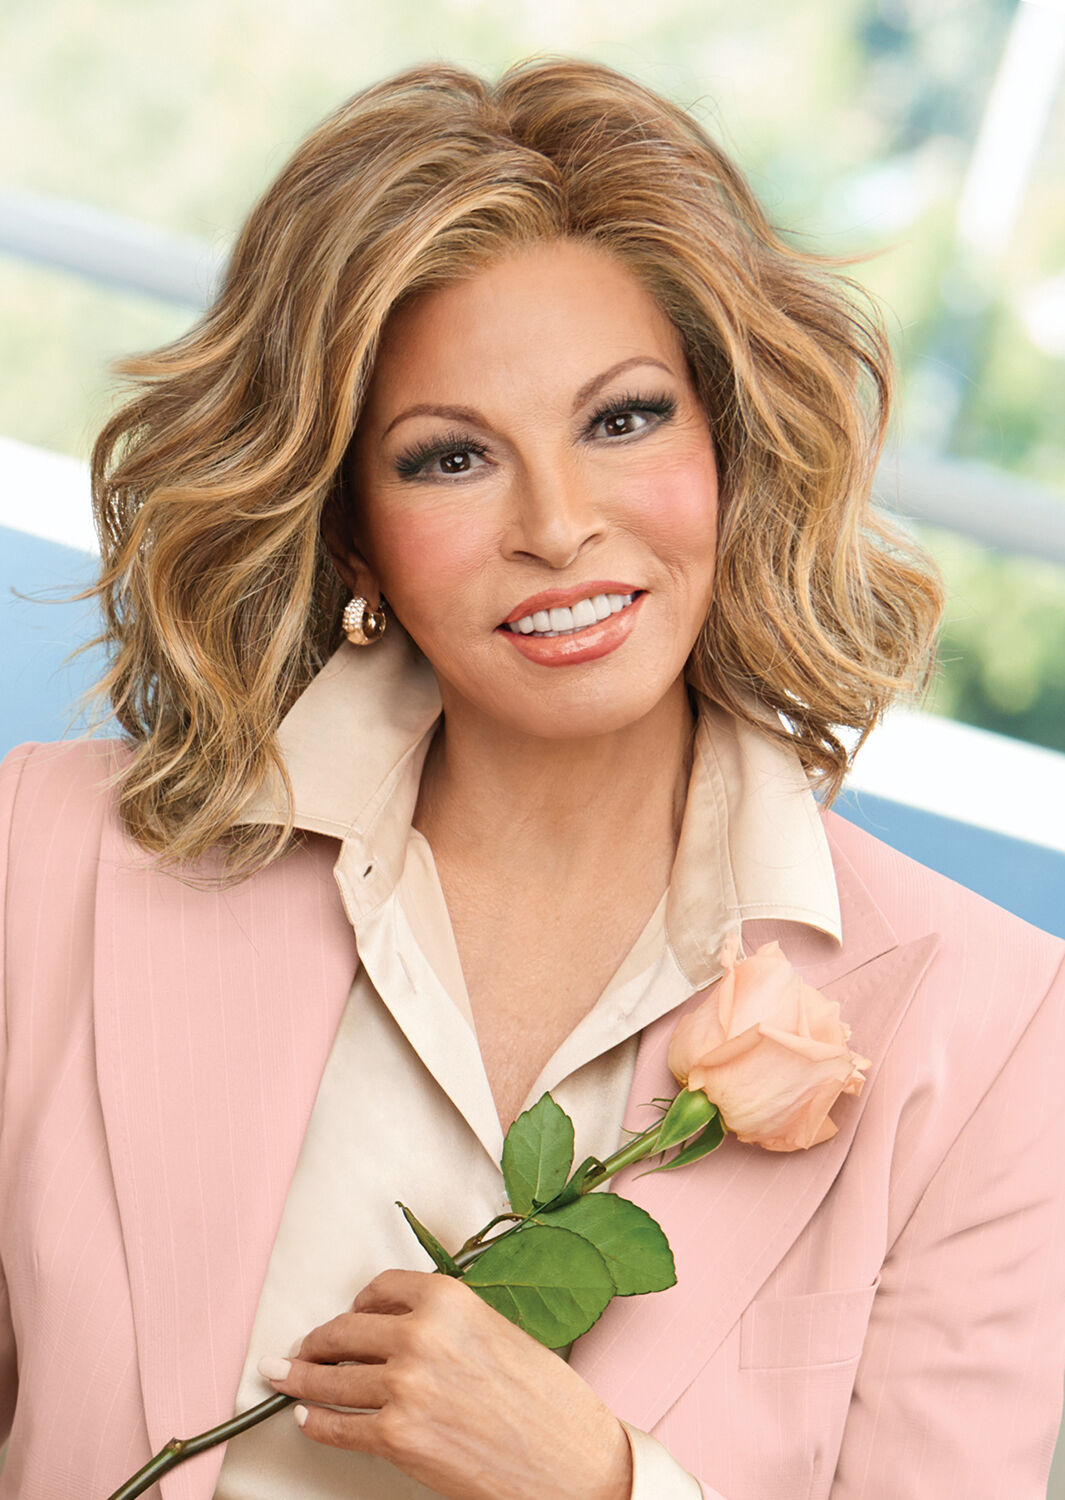 EDITOR'S PICK Wig RAQUEL WELCH, *ANY COLOR!* Mono Top, Lace Front, Heat Friendly - $324.40